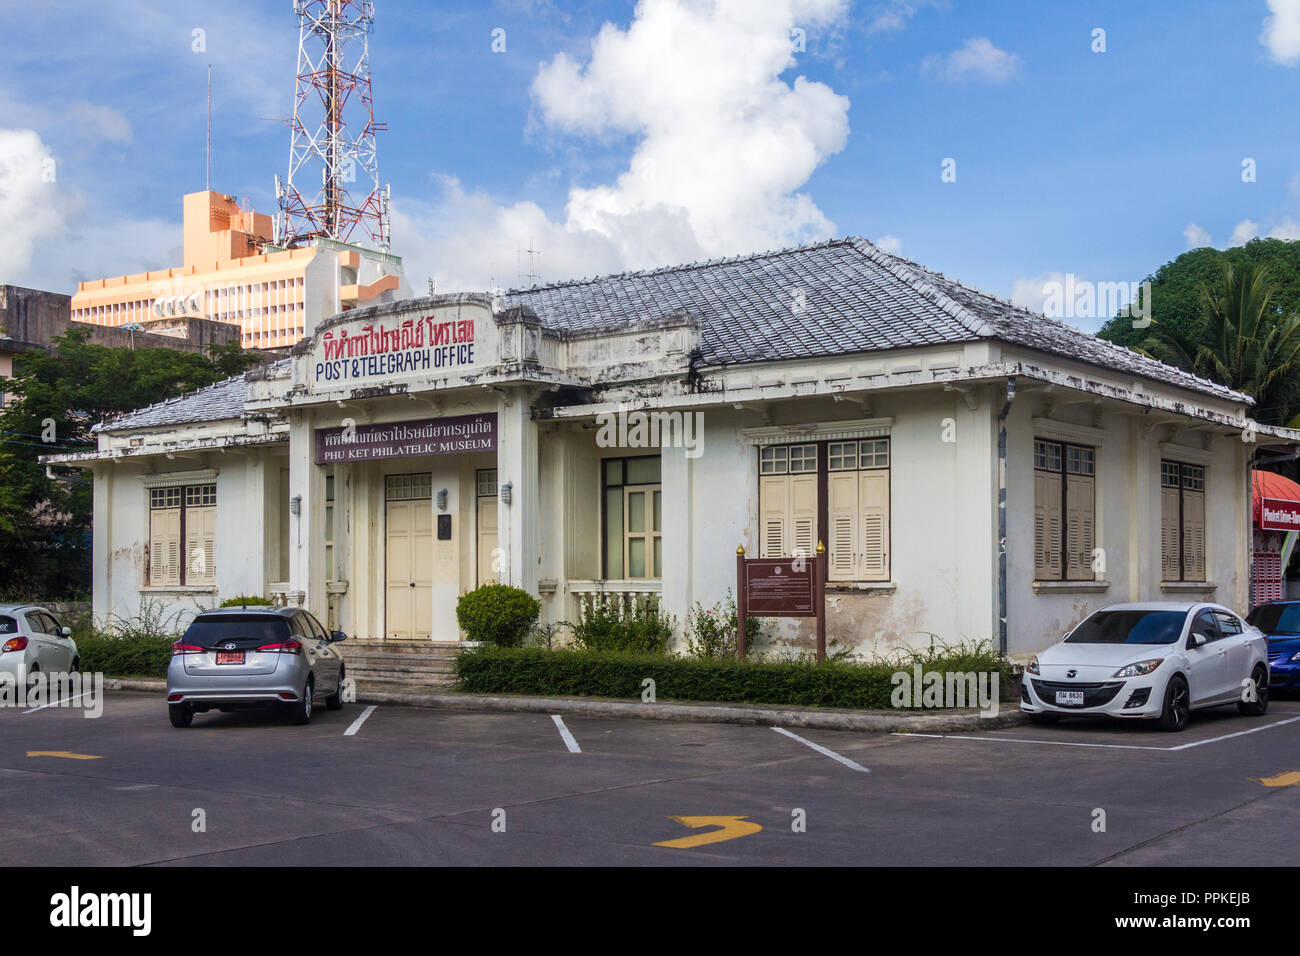 Phuket, Thailand - 2nd September 2018: The former main post office. The building is now a philatelic museum. - Stock Image